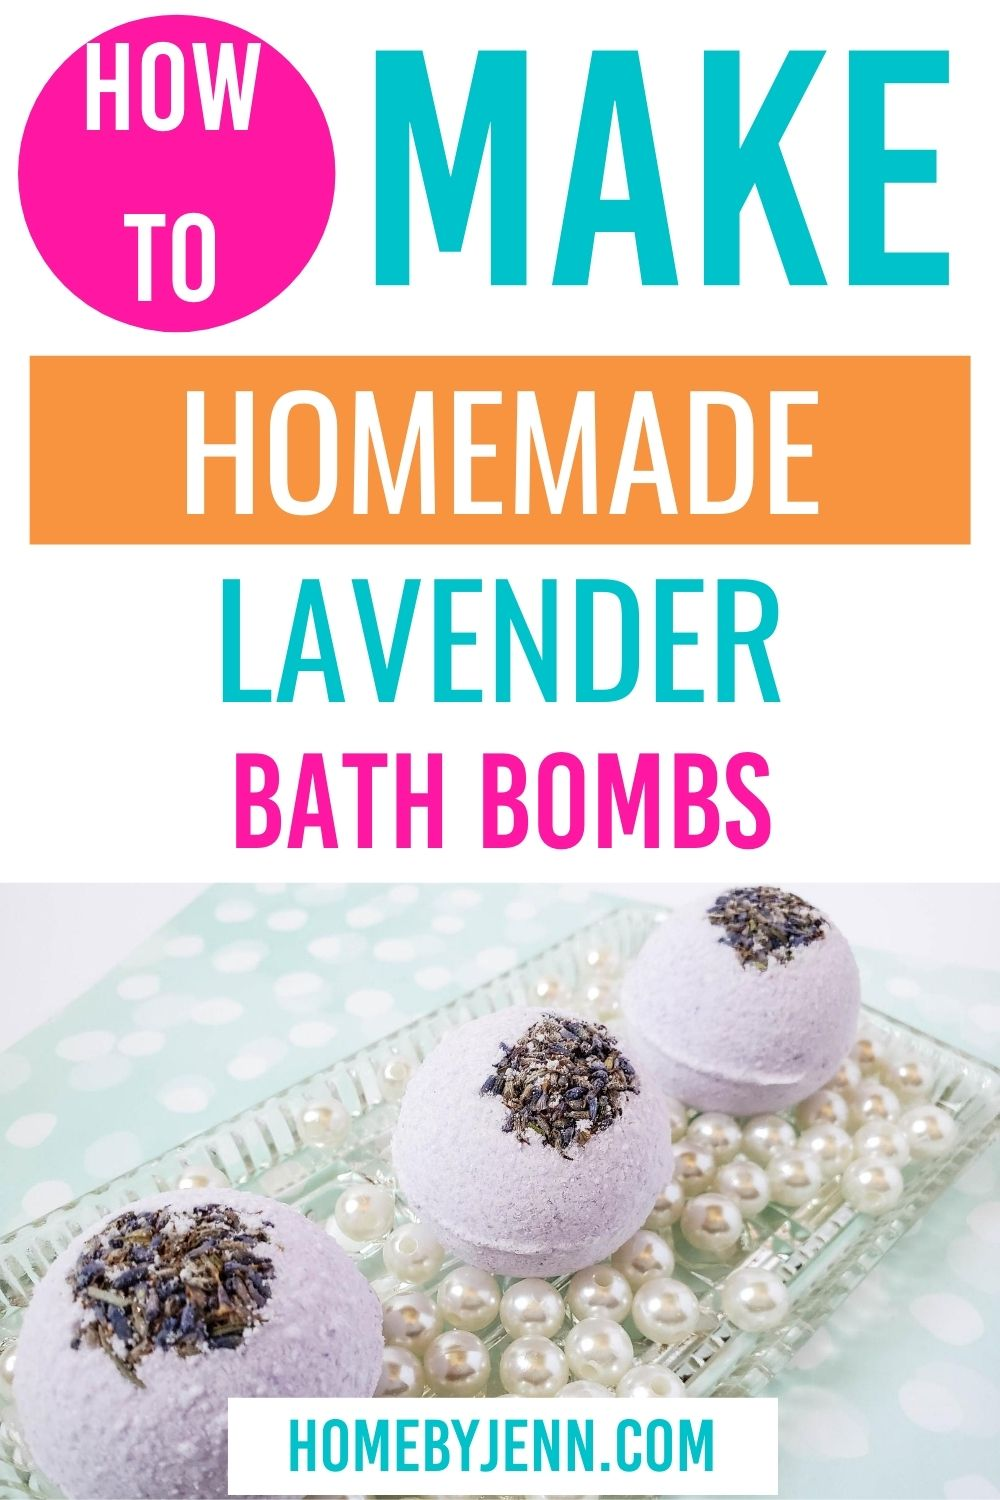 Homemade bath bombs are really easy to make. In this post, you'll learn how to make bath bombs. Check out this simple DIY bath bombs recipe. via @homebyjenn